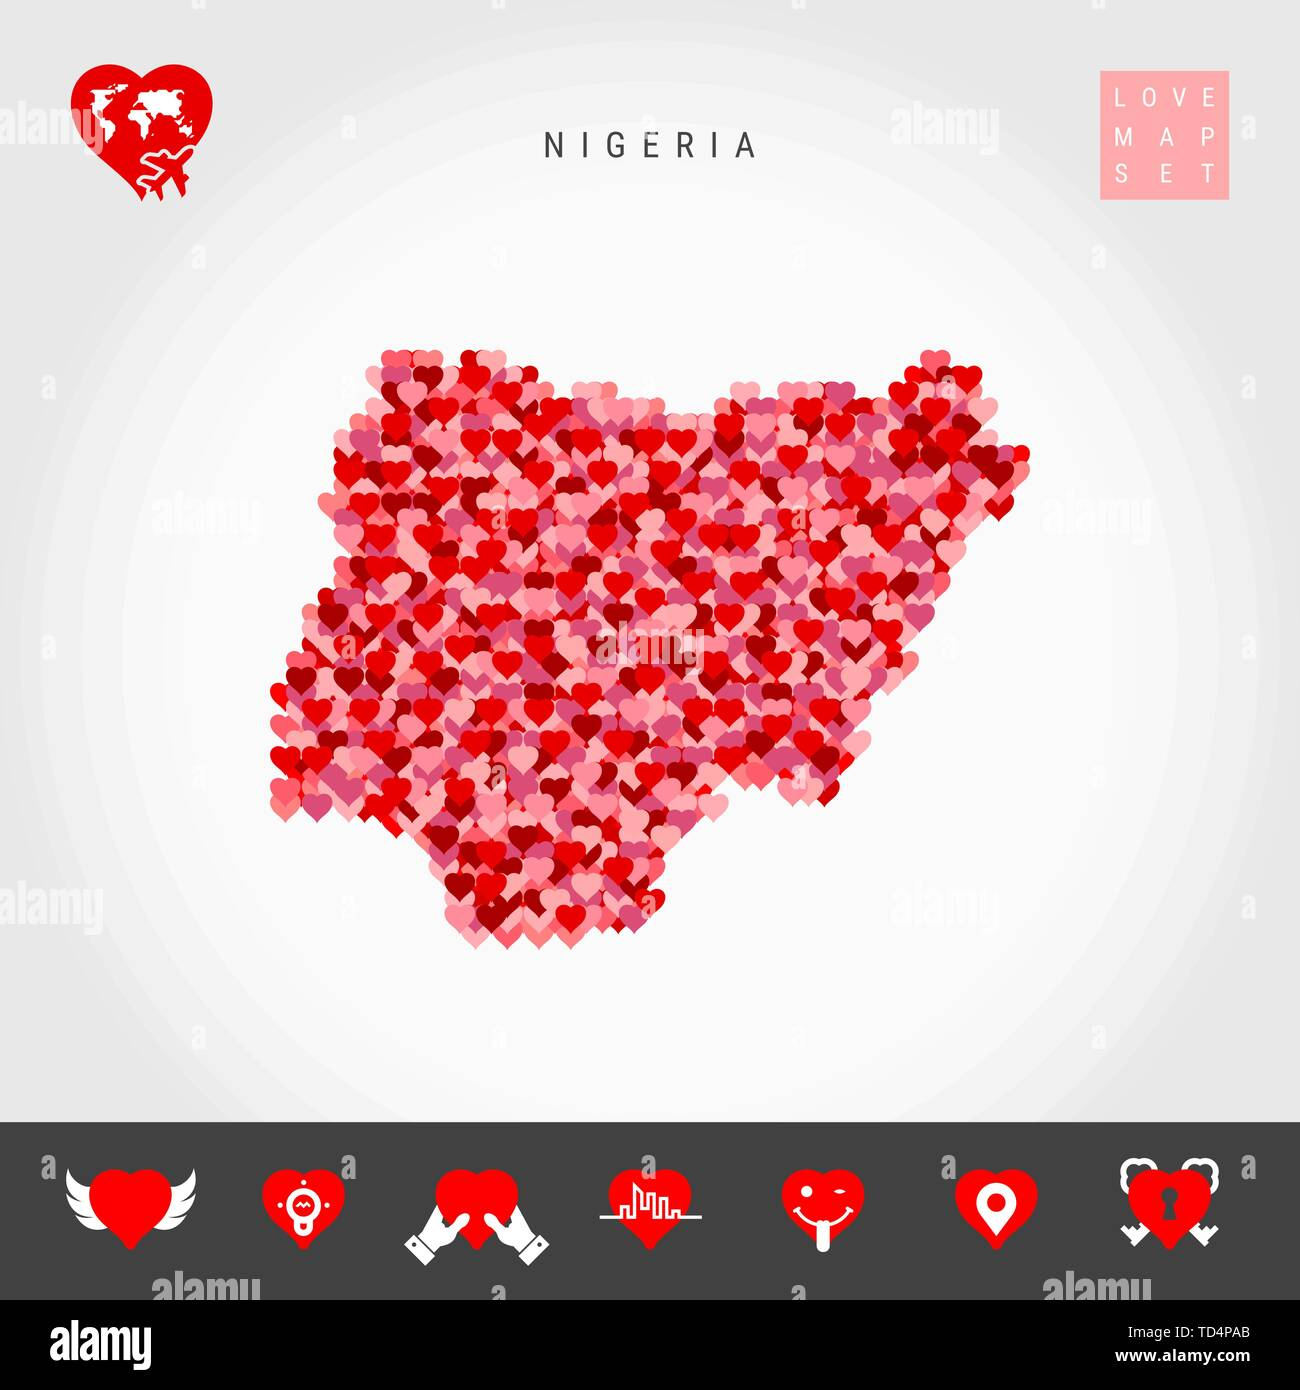 I Love Nigeria. Red and Pink Hearts Pattern Vector Map of Nigeria Isolated on Grey Background. Love Icon Set. - Stock Vector